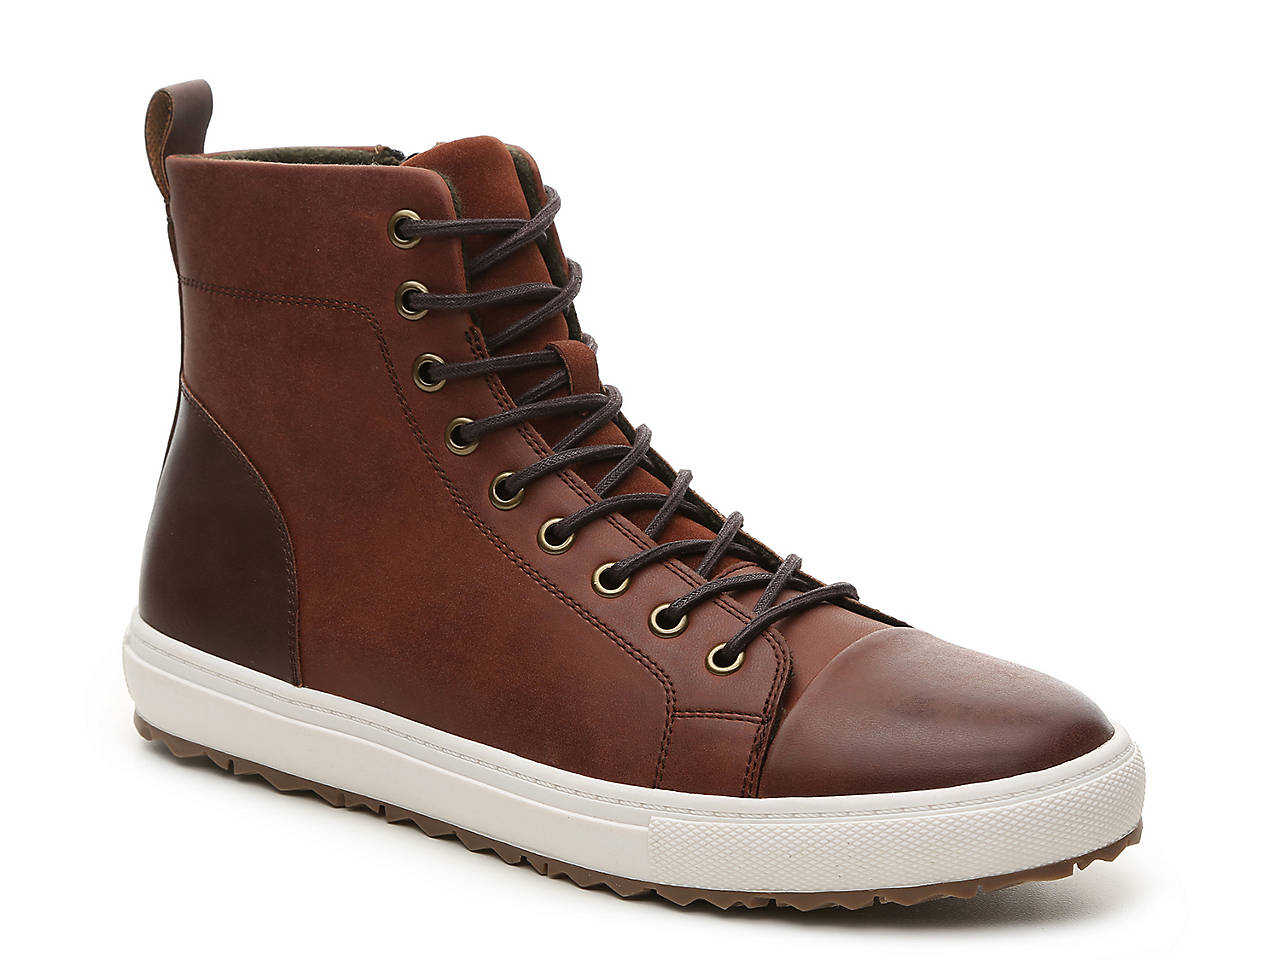 c14576db870 Cogruzzo High-Top Sneaker Boot